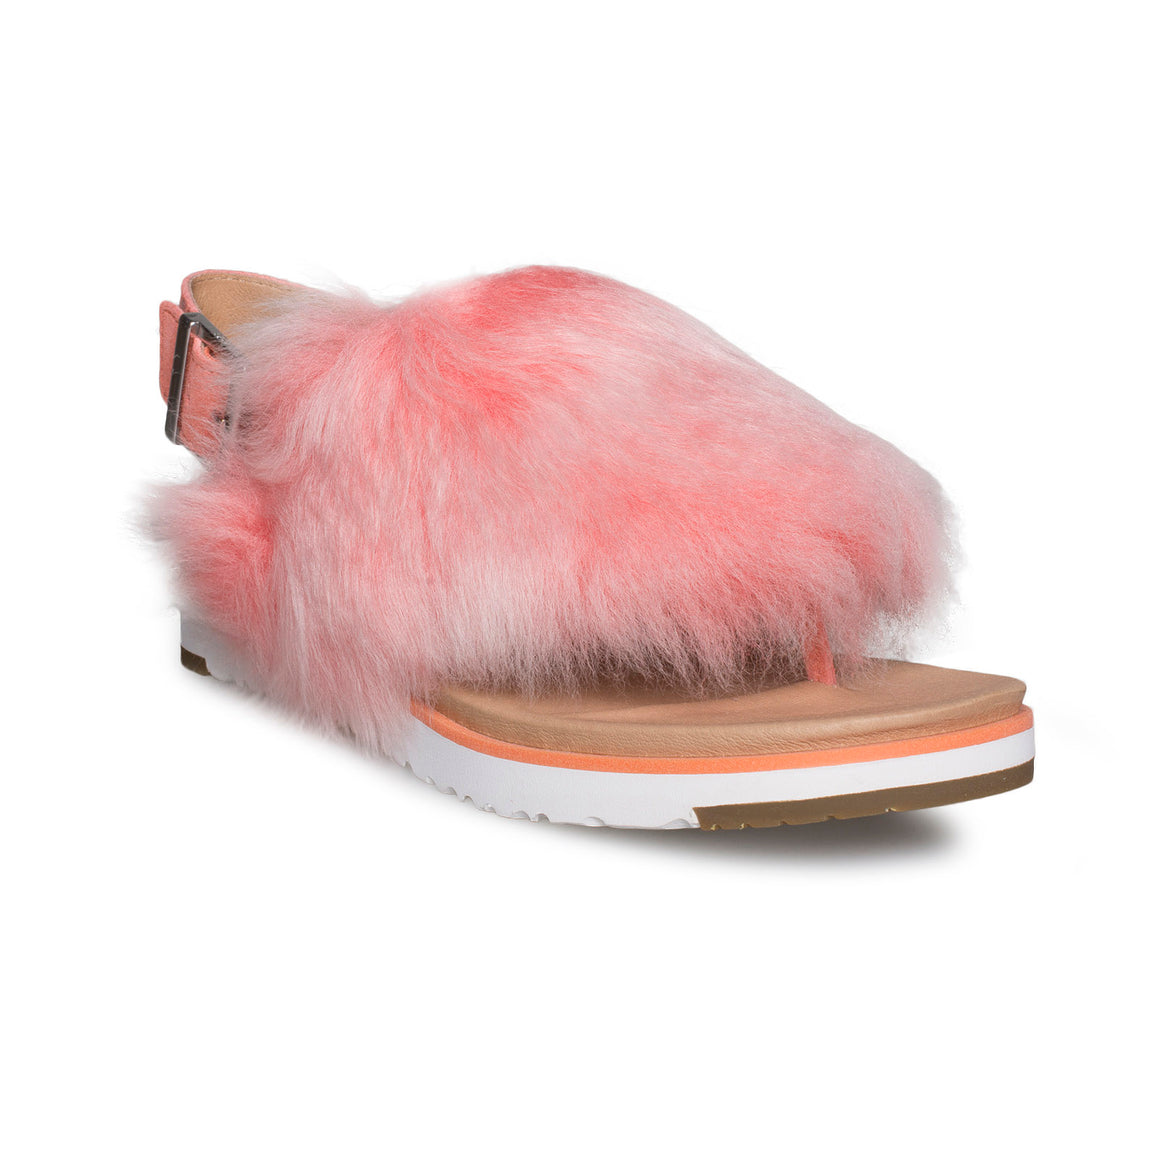 UGG Holly Fusion Coral Sandals - Women's